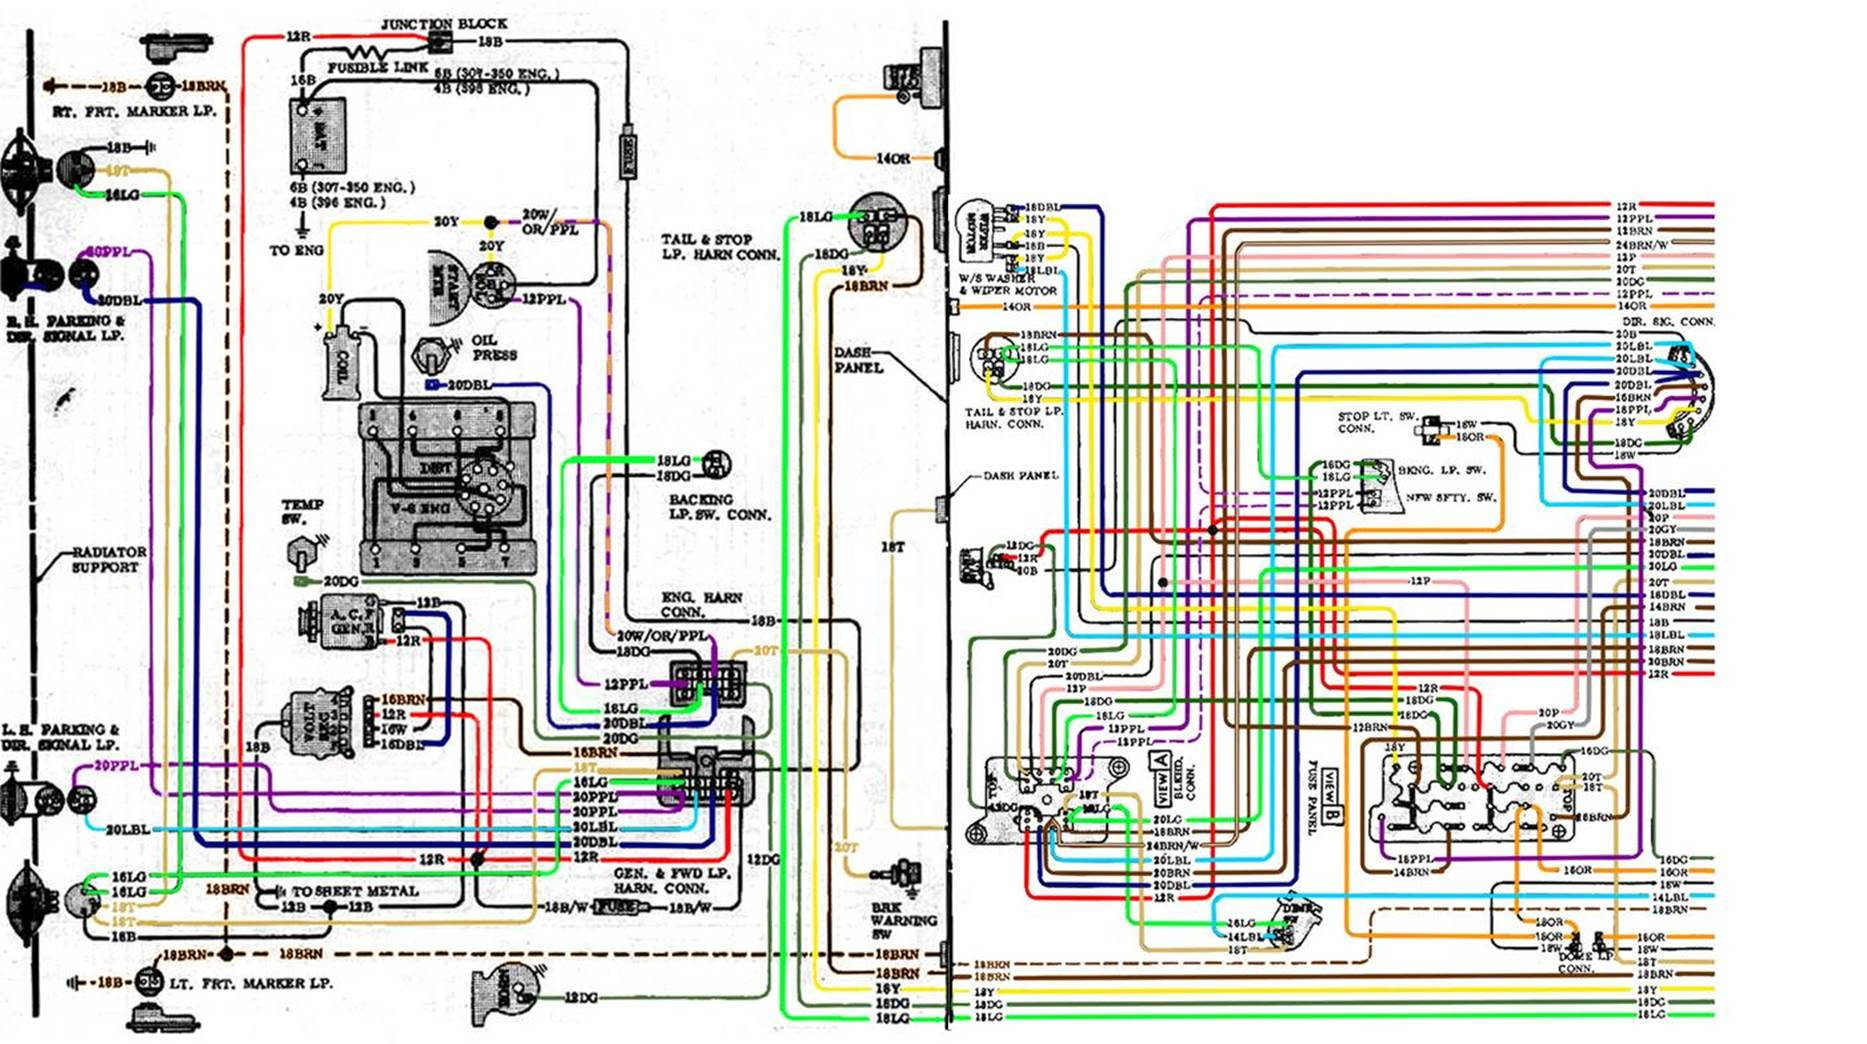 image002 67 72 chevy wiring diagram 1967 chevelle wiring diagram pdf at reclaimingppi.co